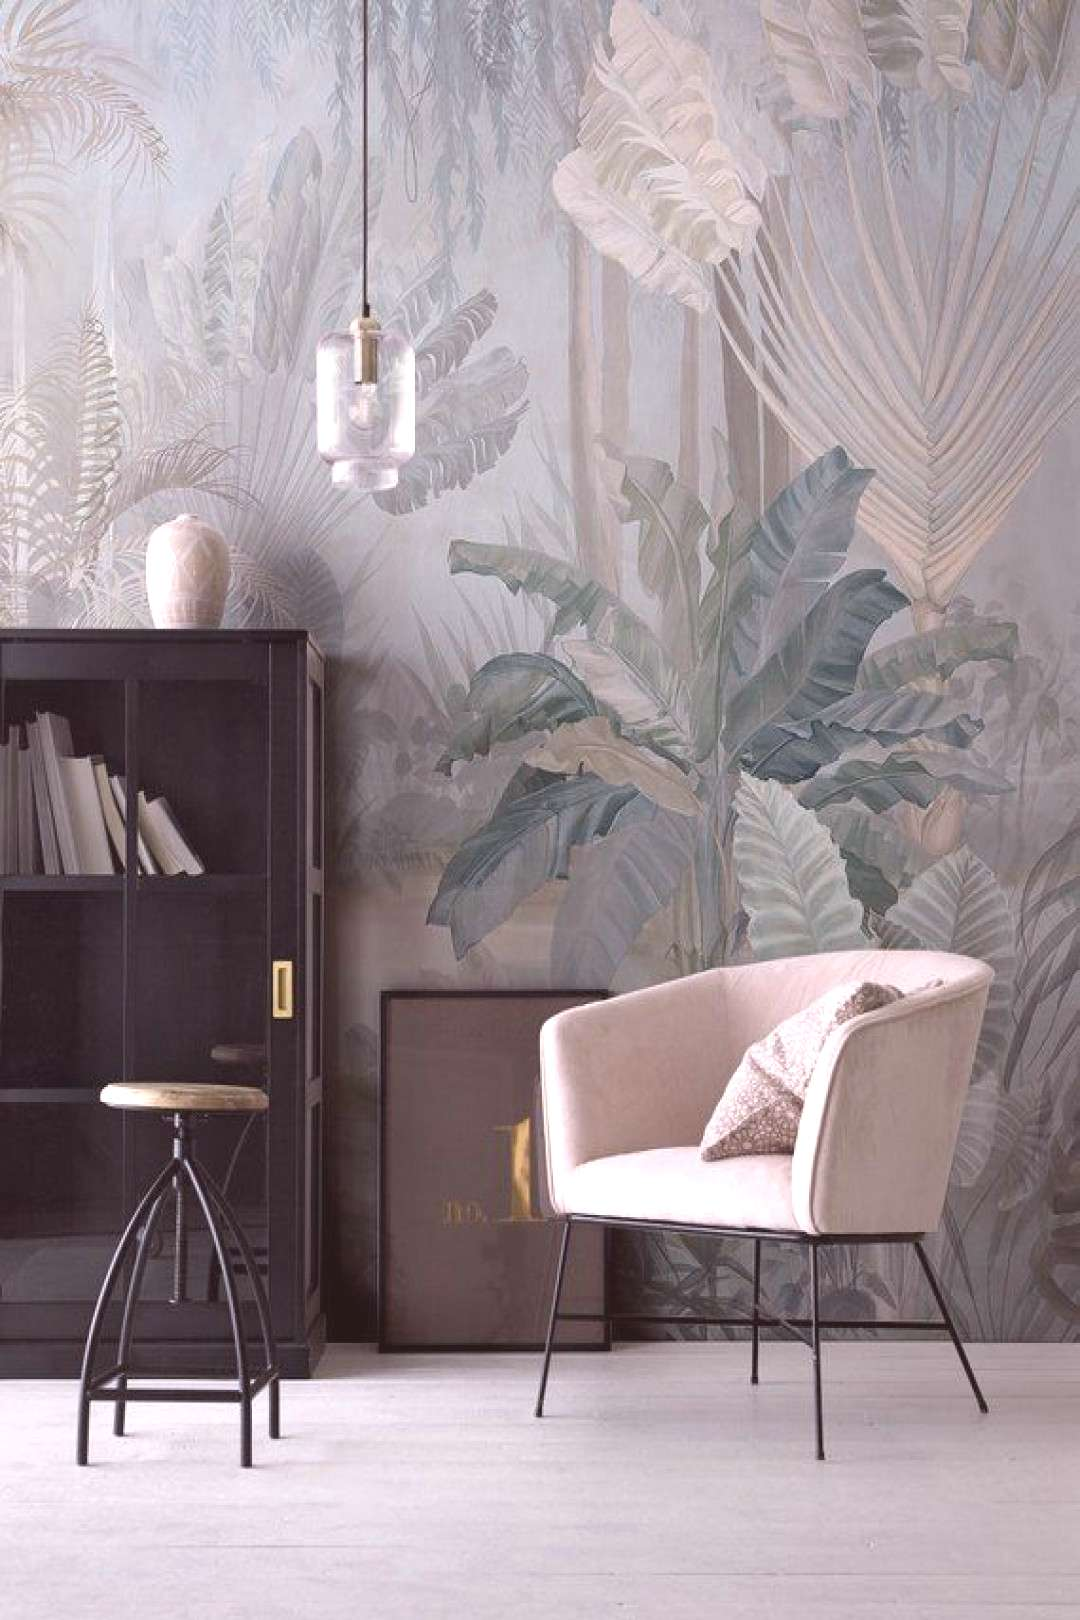 Chinoiserie Scenic Panoramic Wallpaper Repeat Mural, Home Decor Wall Murals, Floral Landscape Wallp